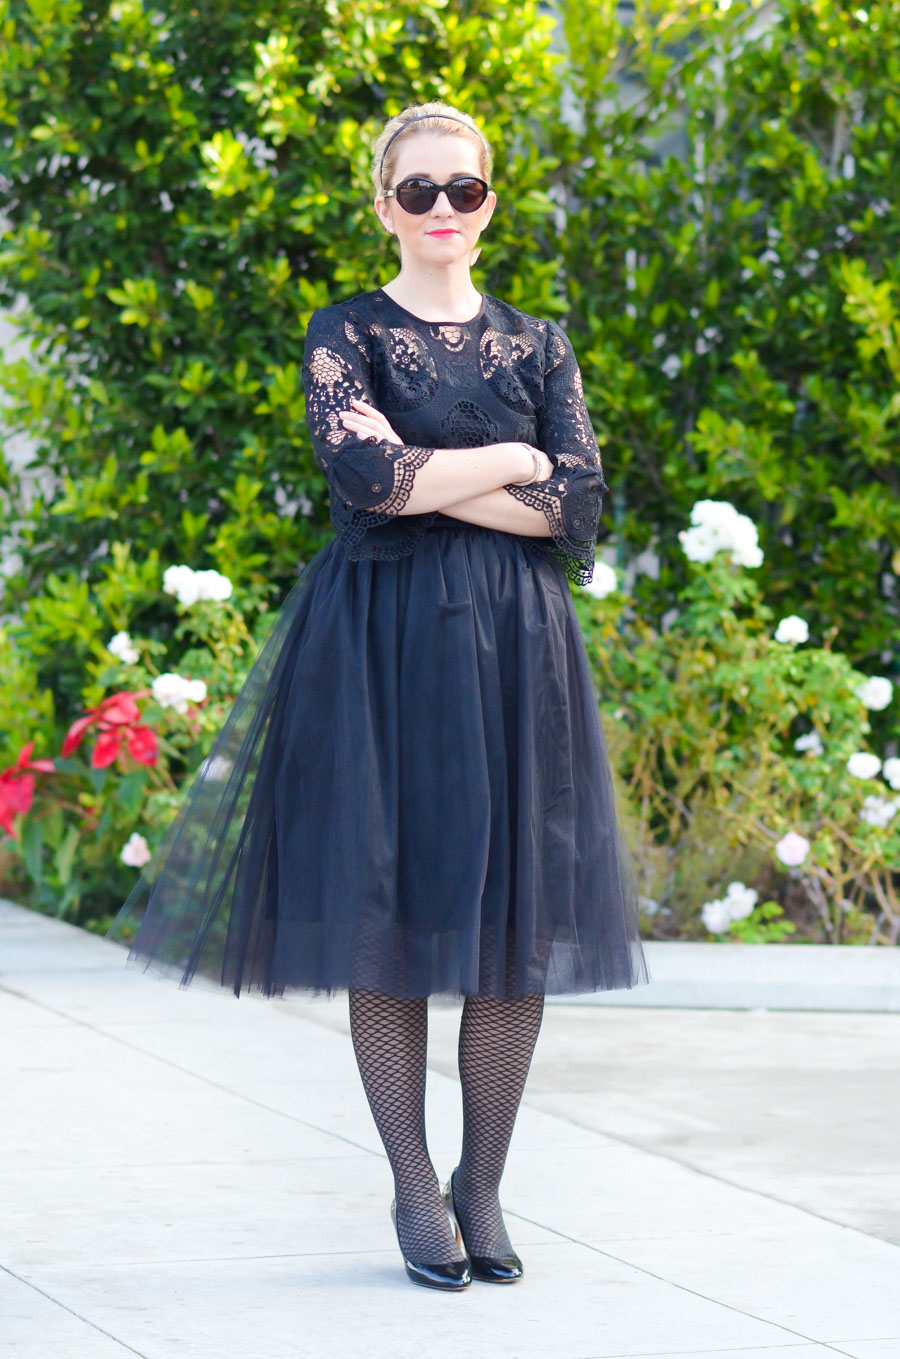 Elegant Black Tulle Skirt Outfit Idea w. Black Lace Top. Perfect for Holiday Parties.